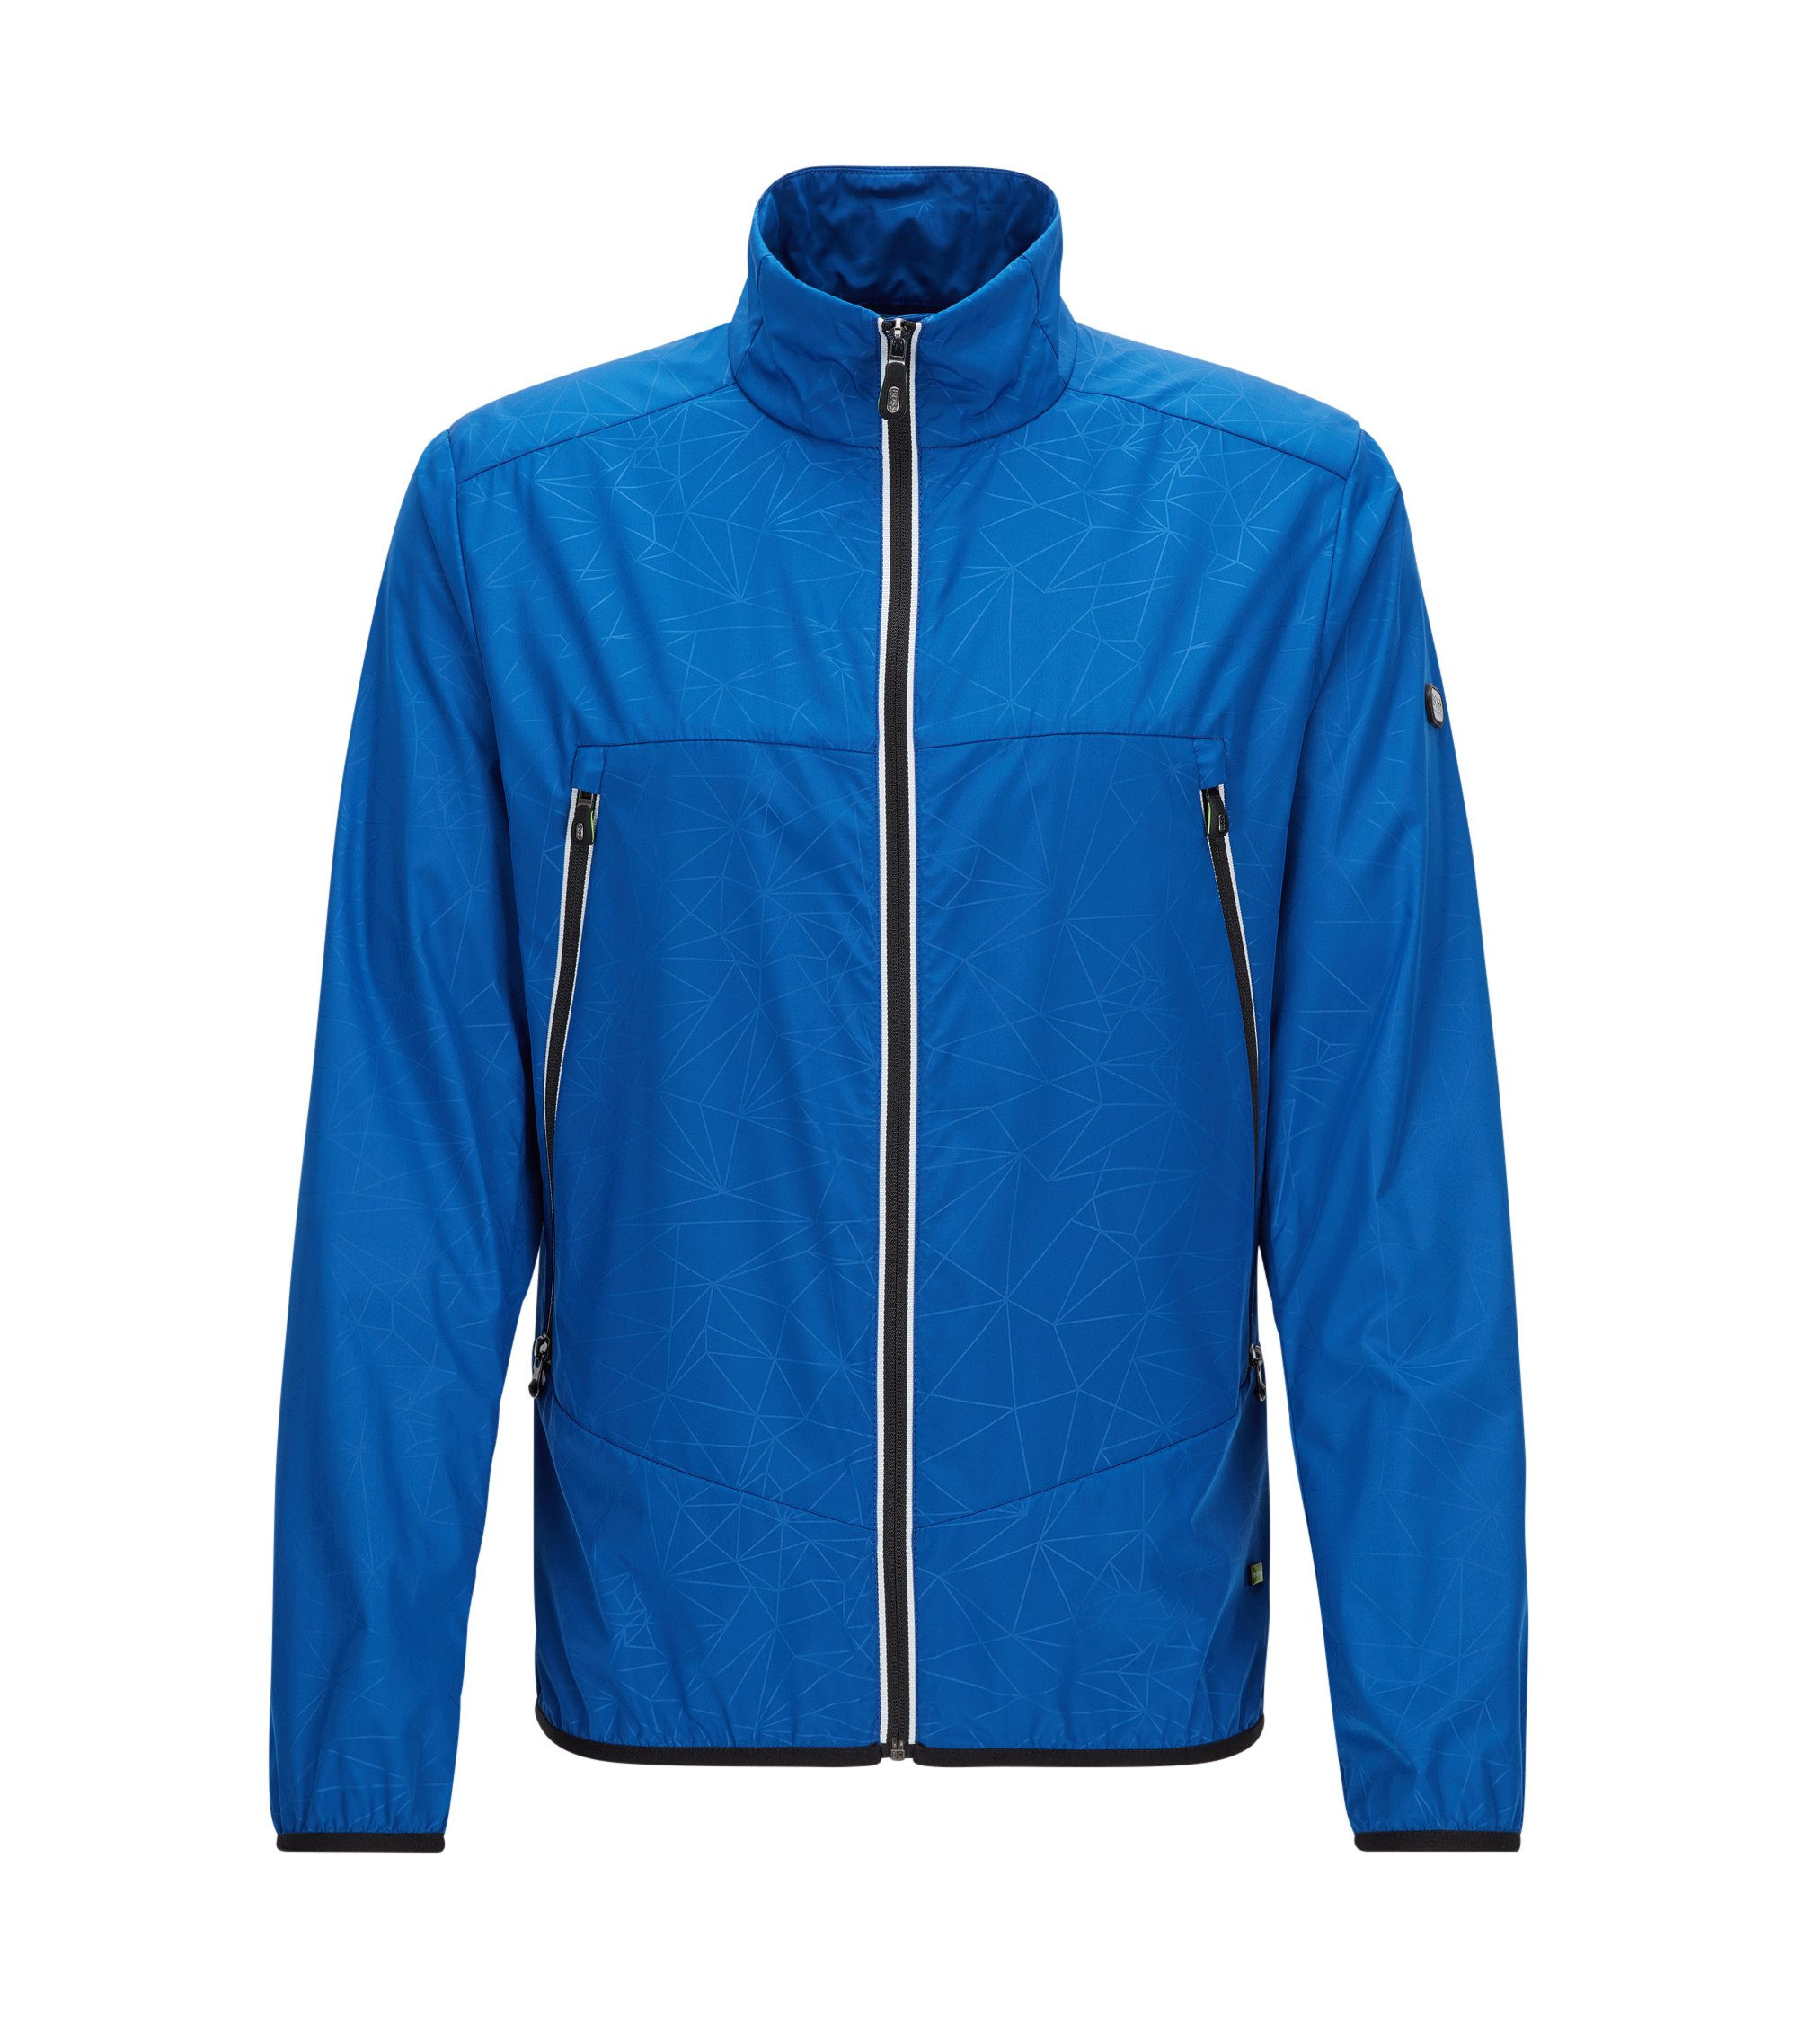 Veste Regular Fit en popeline imperméable, Bleu